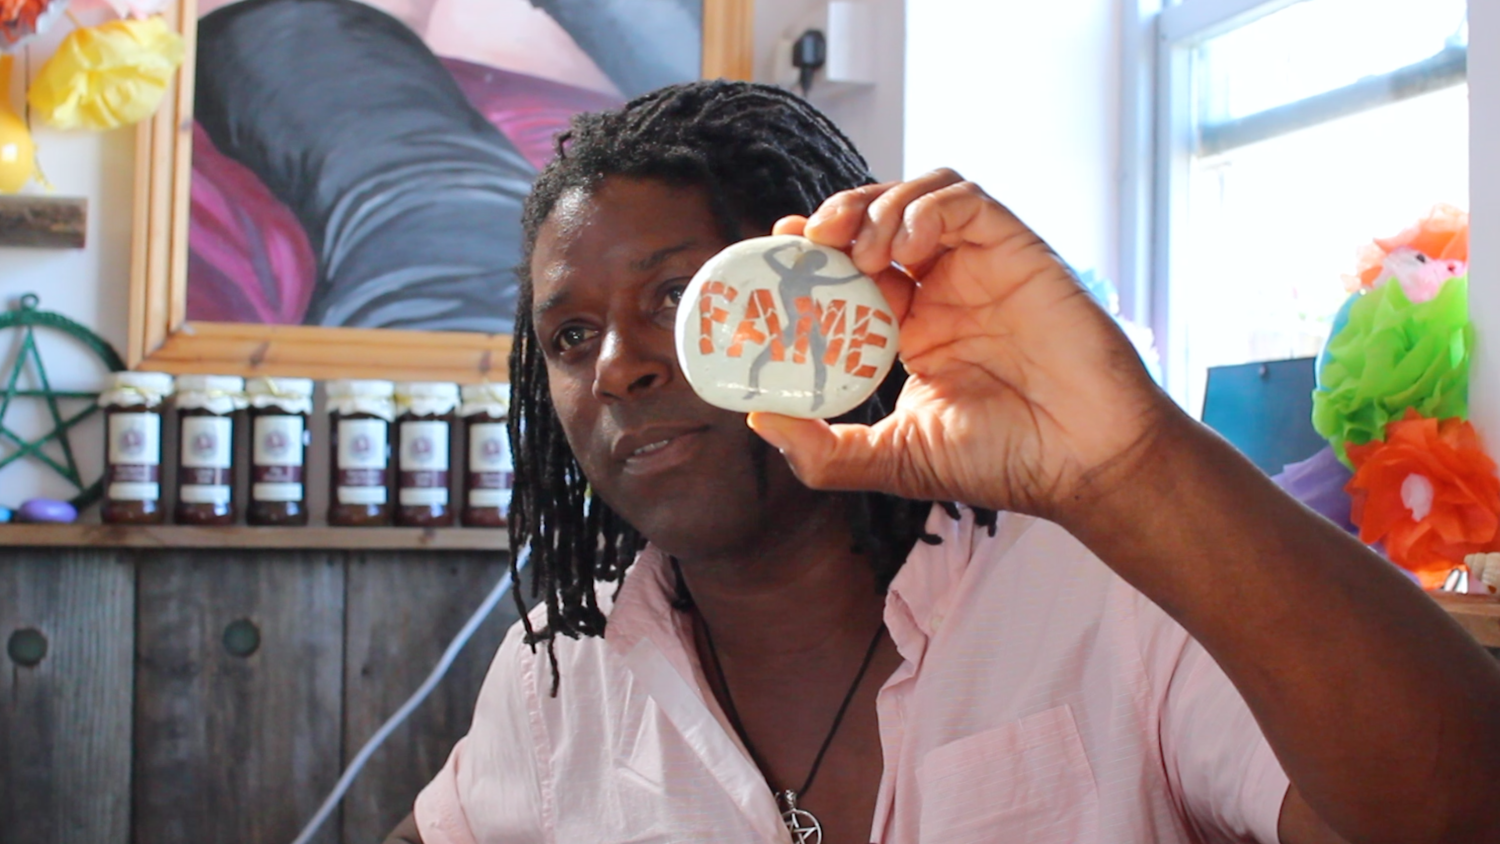 Peter St Ange of the Sea Cafe Coffee Shop in Deal Kent shows his stone painted to symbolise the fallacy of fame. It shows a silver figure on a white background with FAME painted in orange.